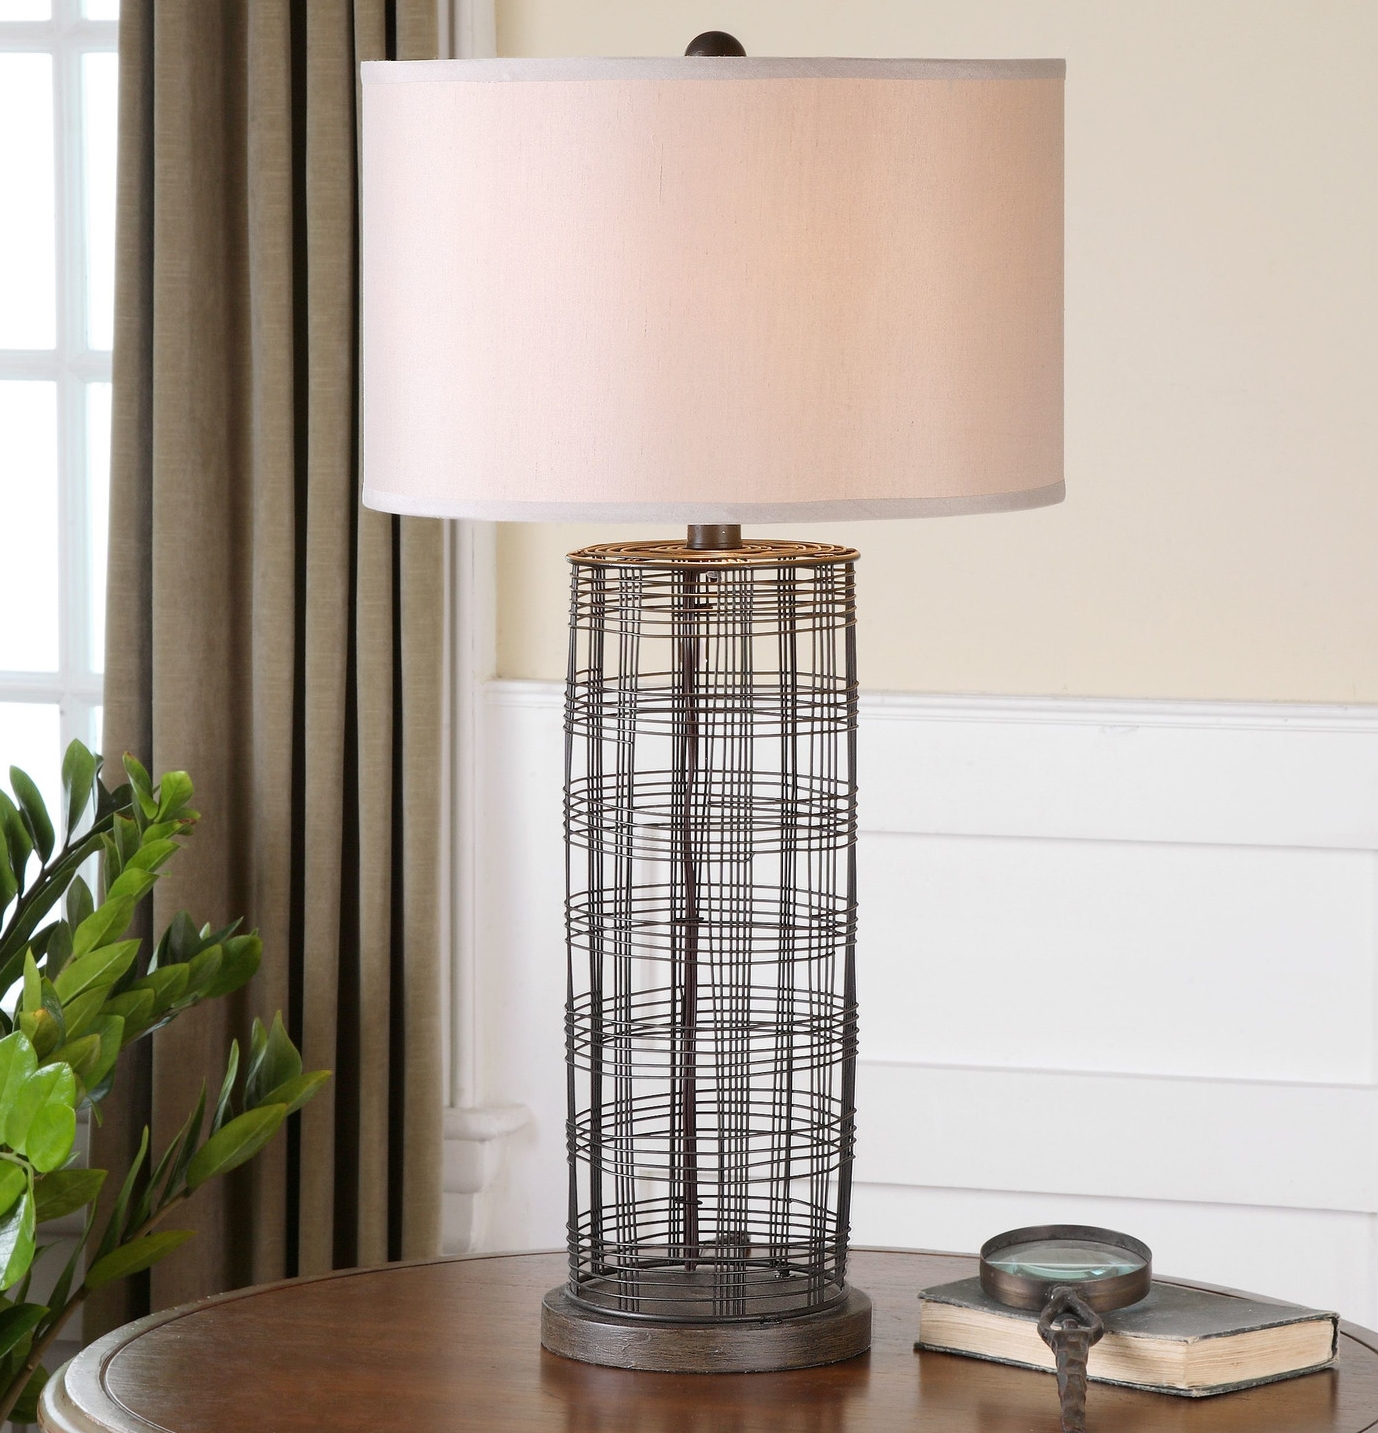 Uttermost-Engel-Metal-Wire-30-H-Table-Lamp-with-Drum-Shade-26177-1.jpg